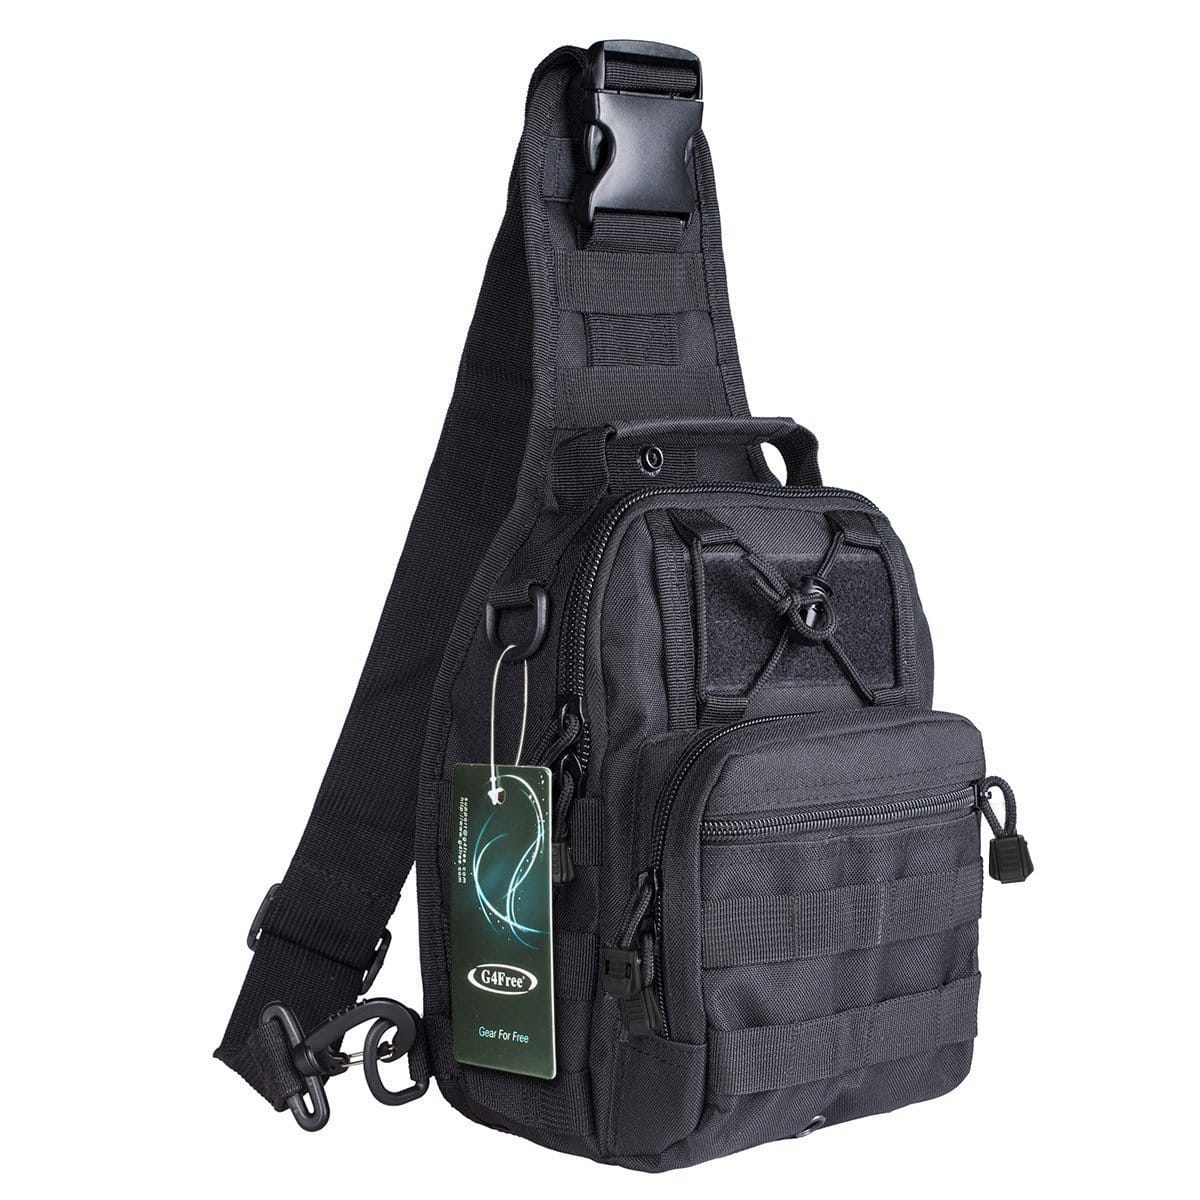 G4Free Outdoor Tactical Backpack Military Sport Pack Chest Shoulder Sling for Camping, Hiking, Trekking from $12.99